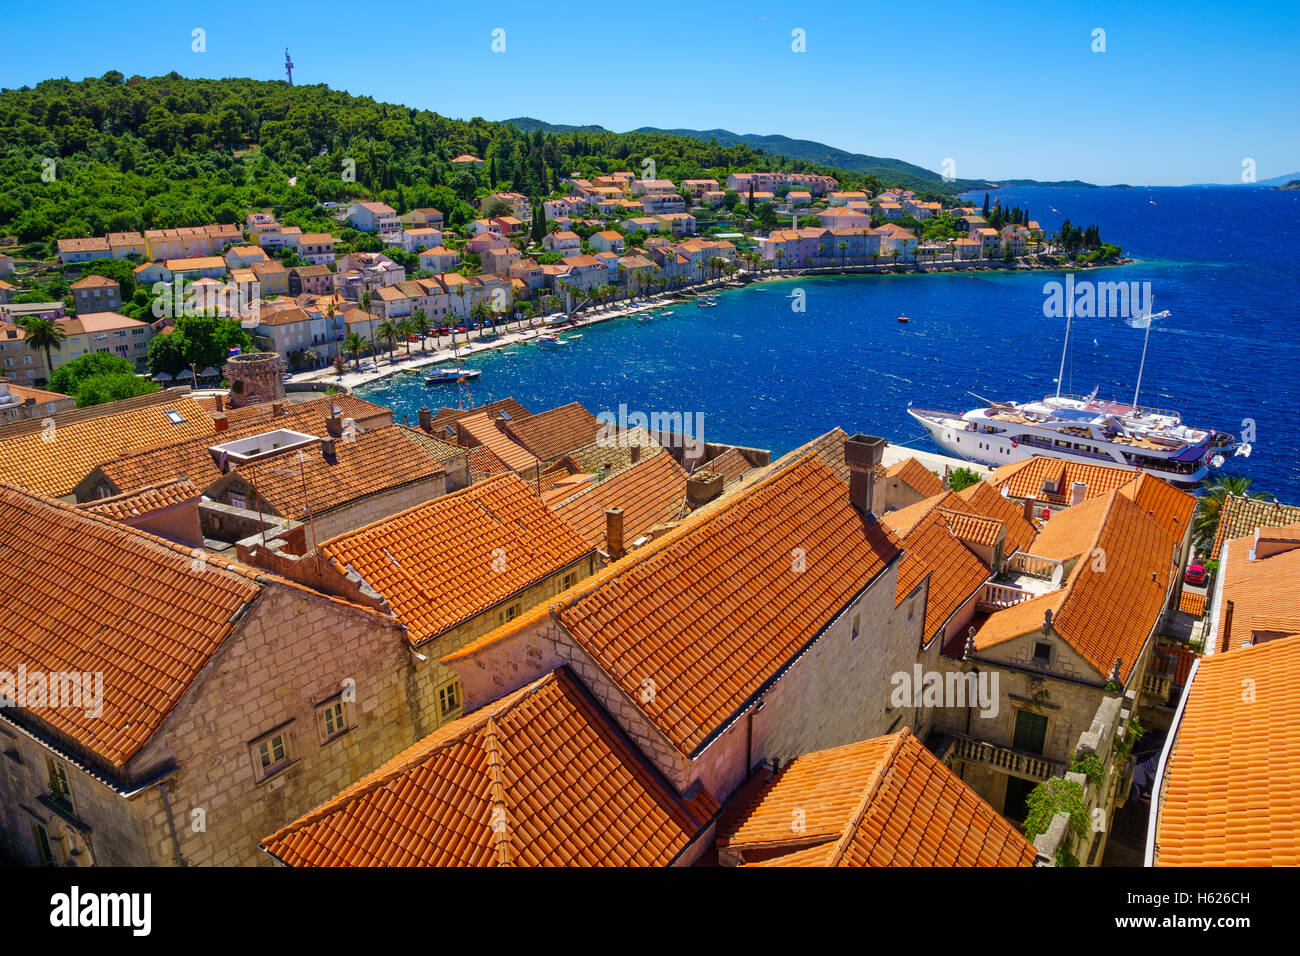 Rooftop view of the old town of Korcula, with roofs, houses and boats, in Dalmatia, Croatia - Stock Image